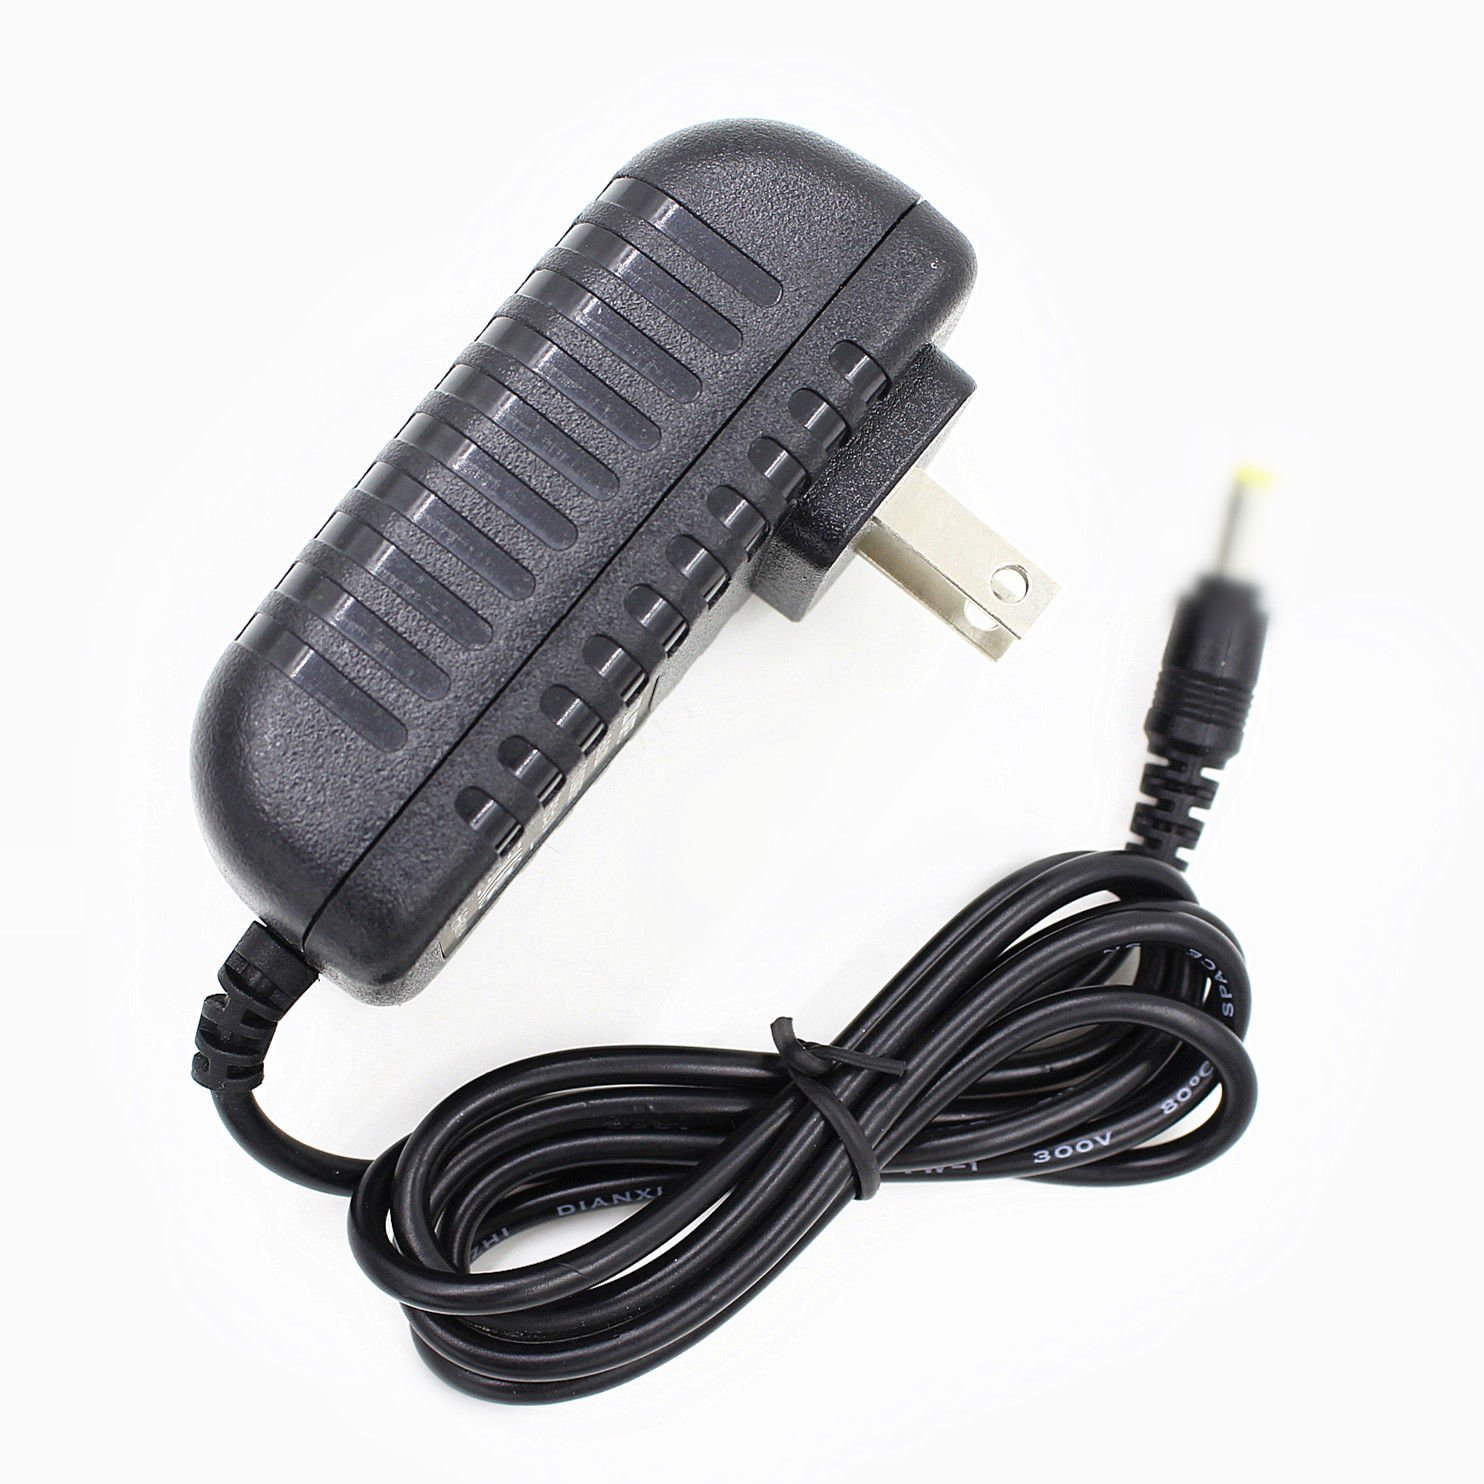 US AC Wall Power Supply Adapter Charger For TP-LINK Archer C7 Wireless Router